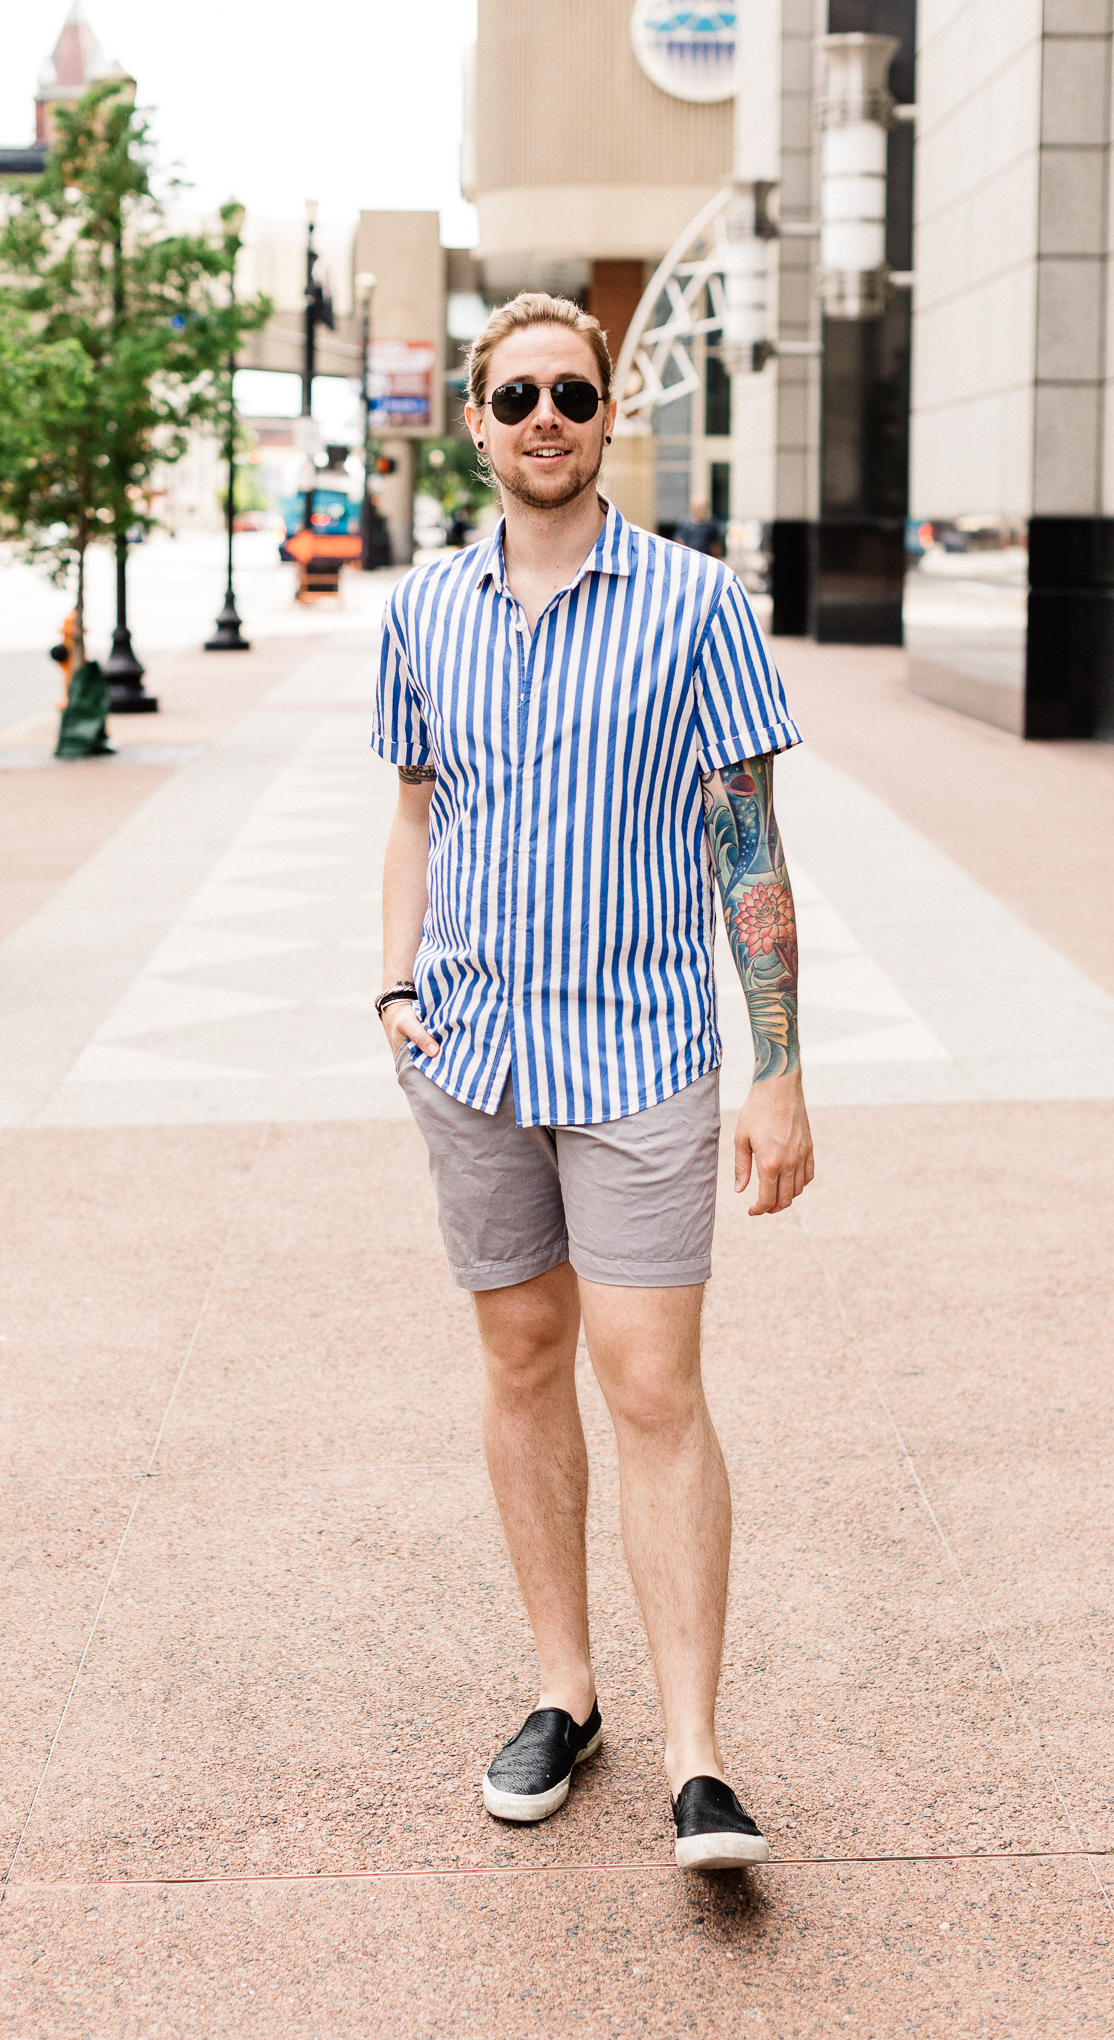 mens personal style blog, marks and spencer mens clothing, scotch and soda, scotch & soda, style blog